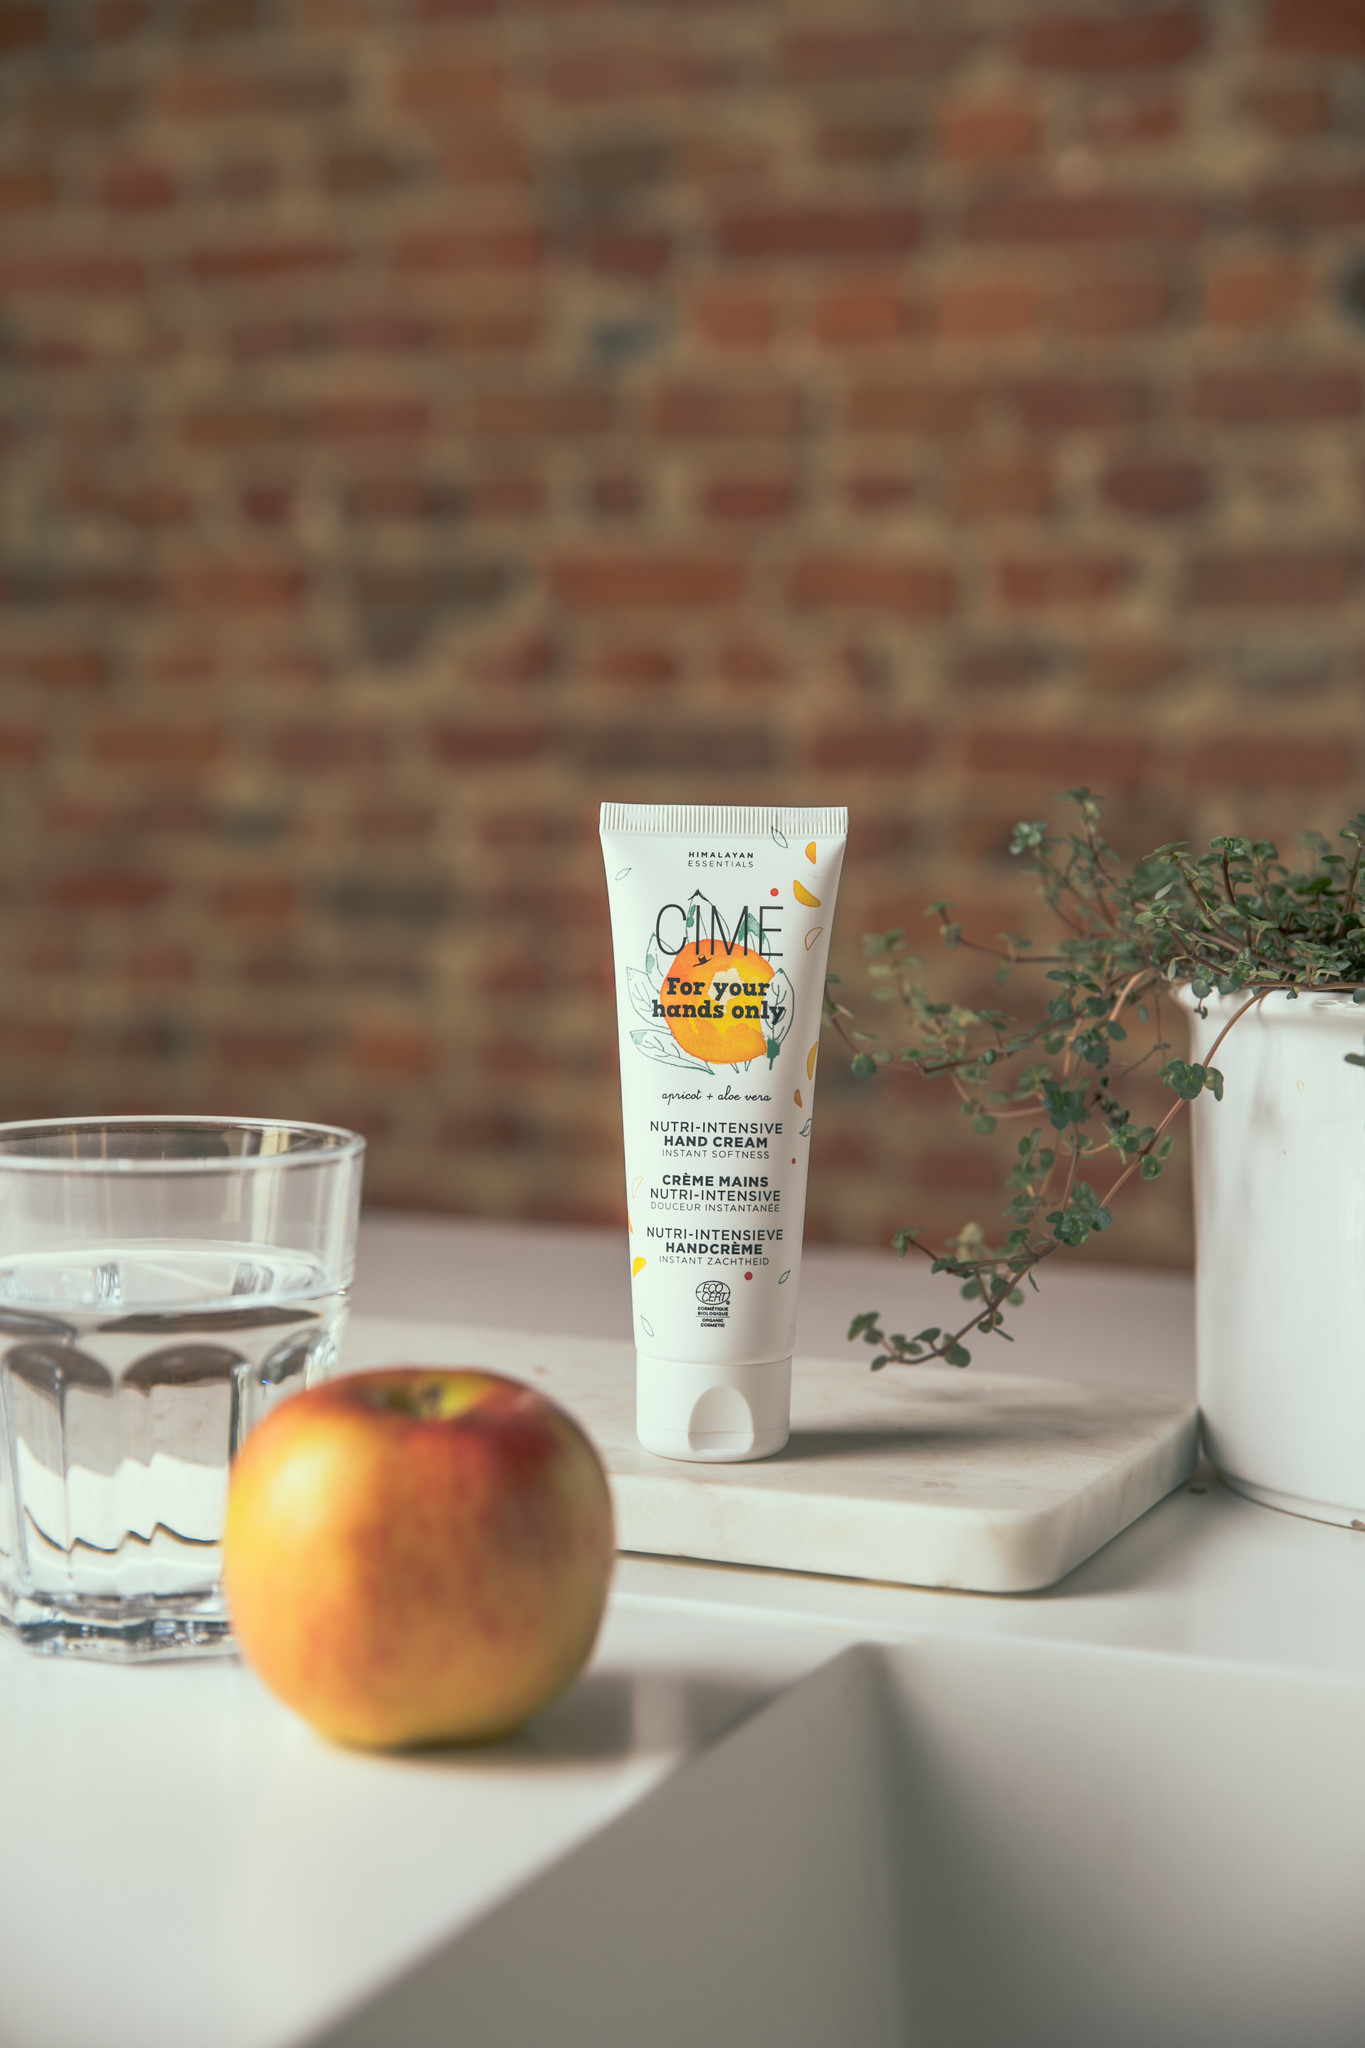 Nutri-intensieve handcrème - For your hands only - Cîme